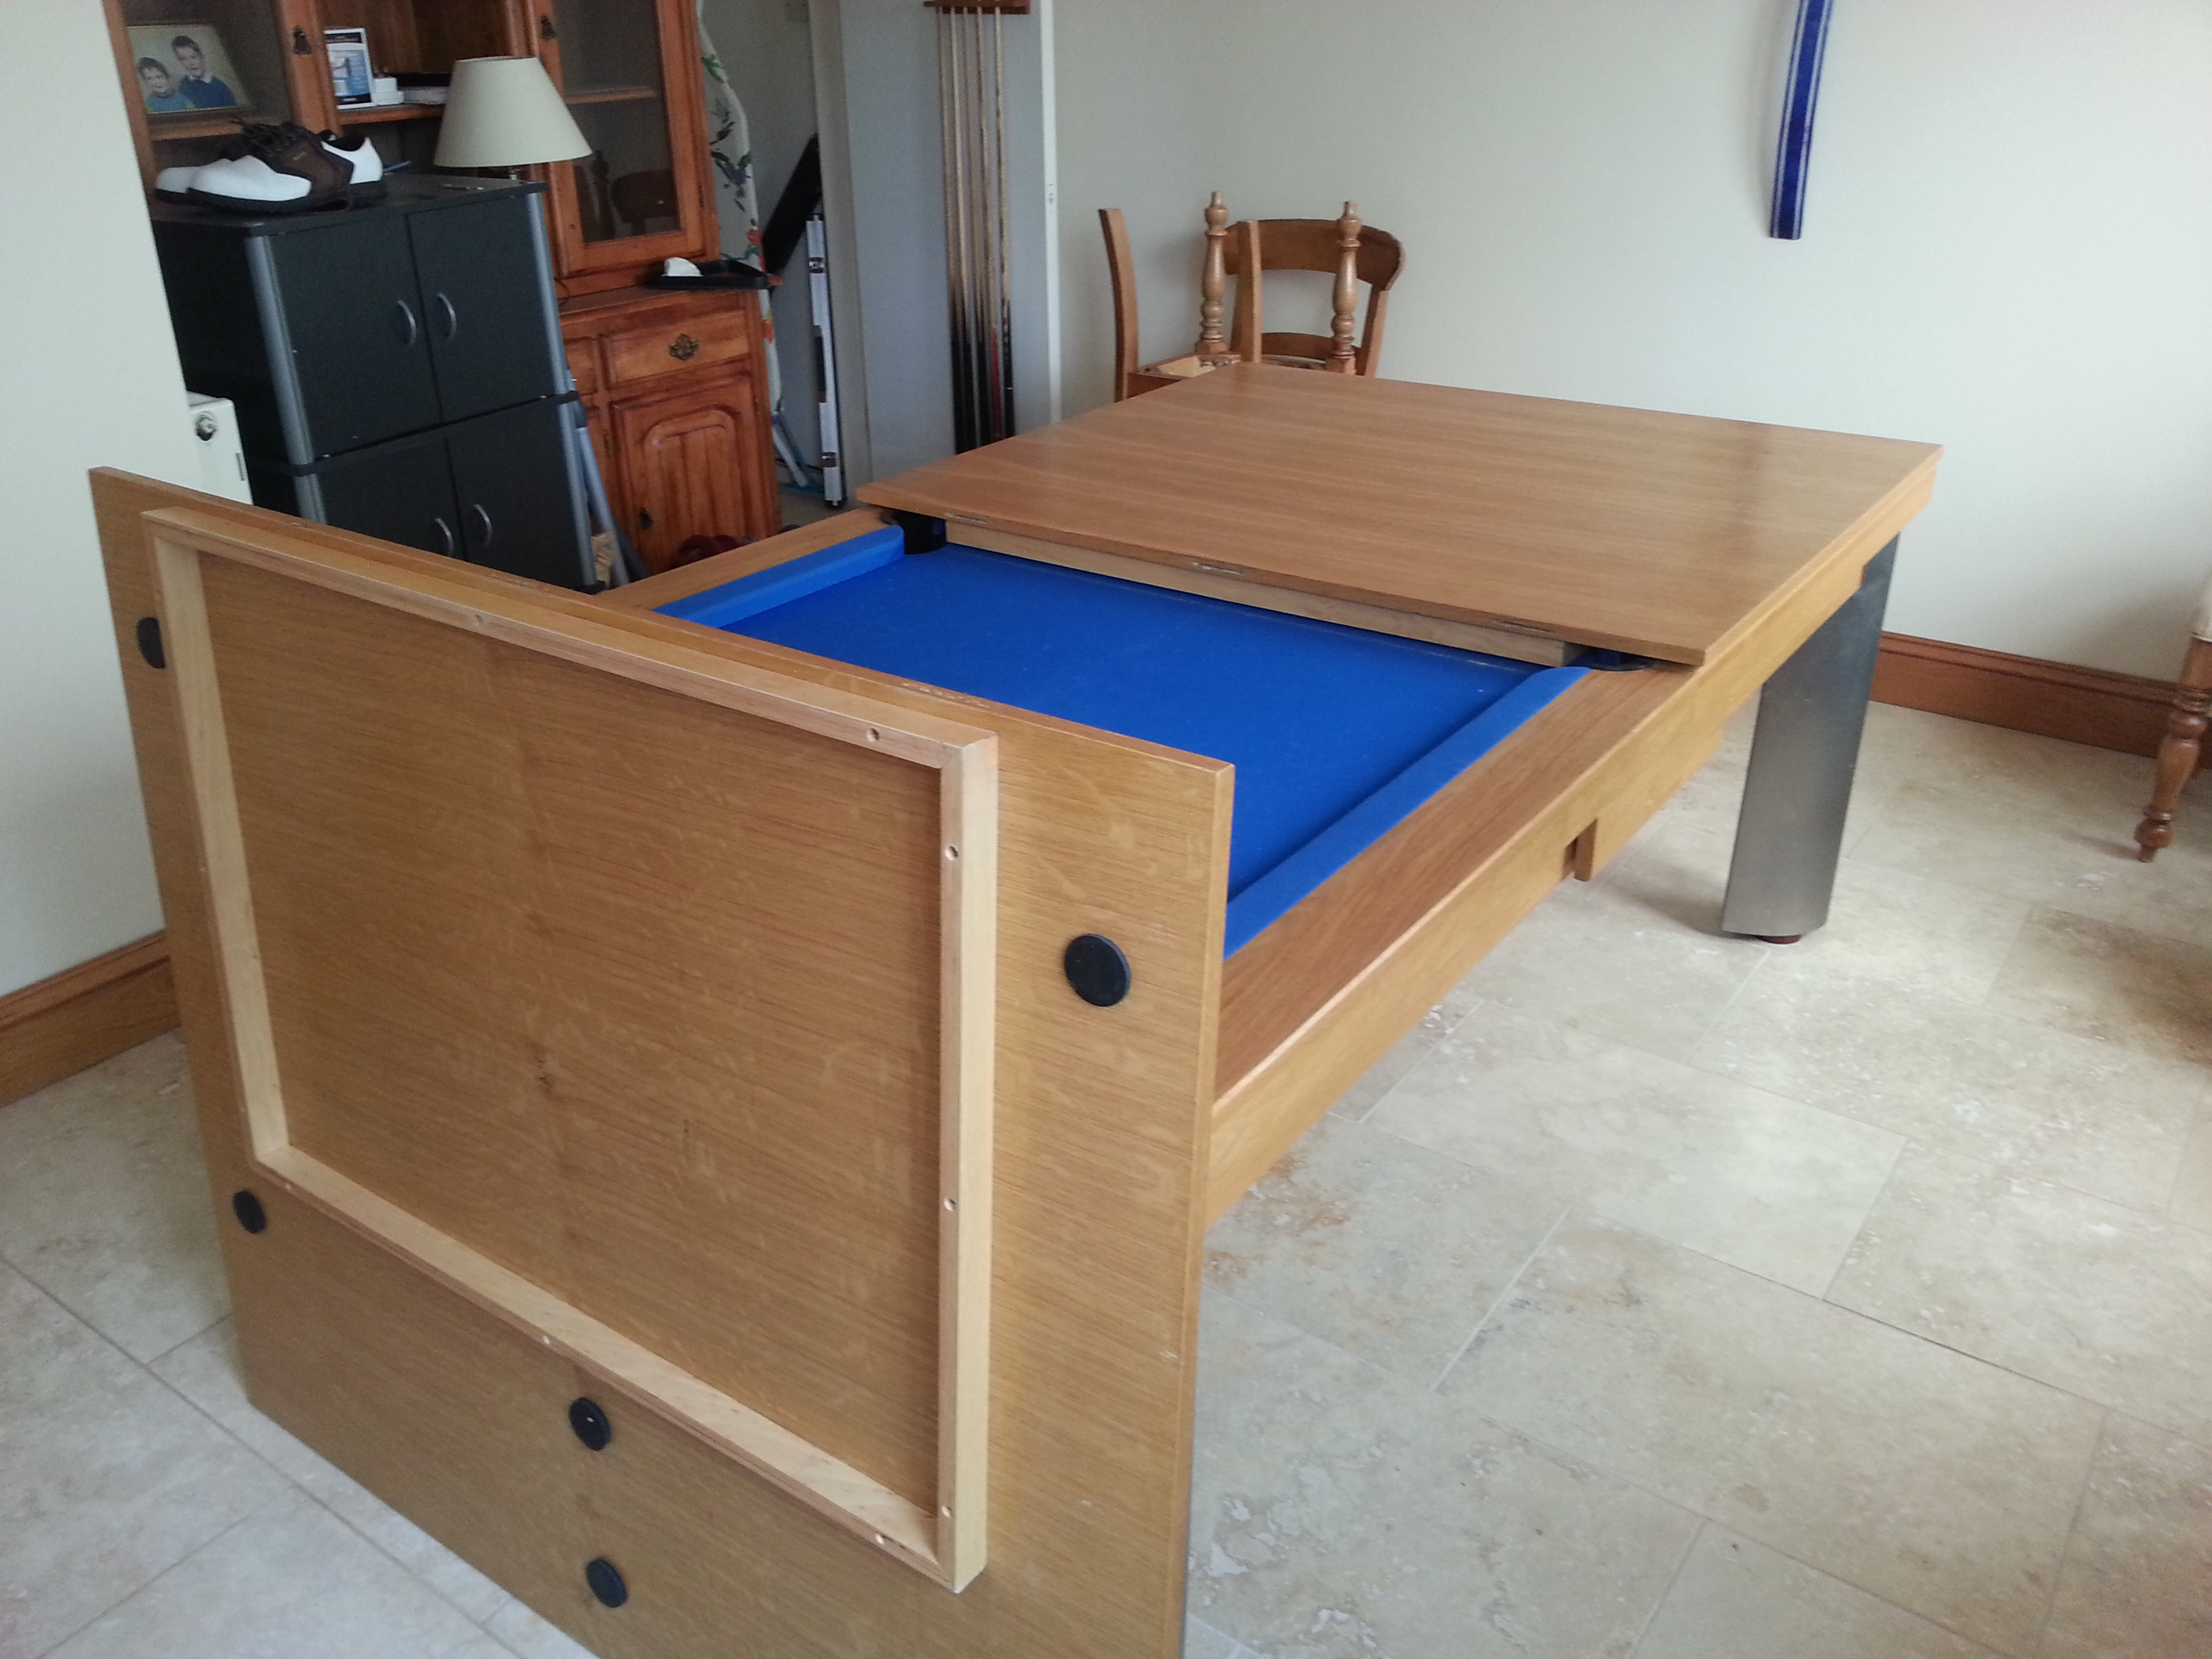 Storing Seating from a Pool Table Dining Table Combo